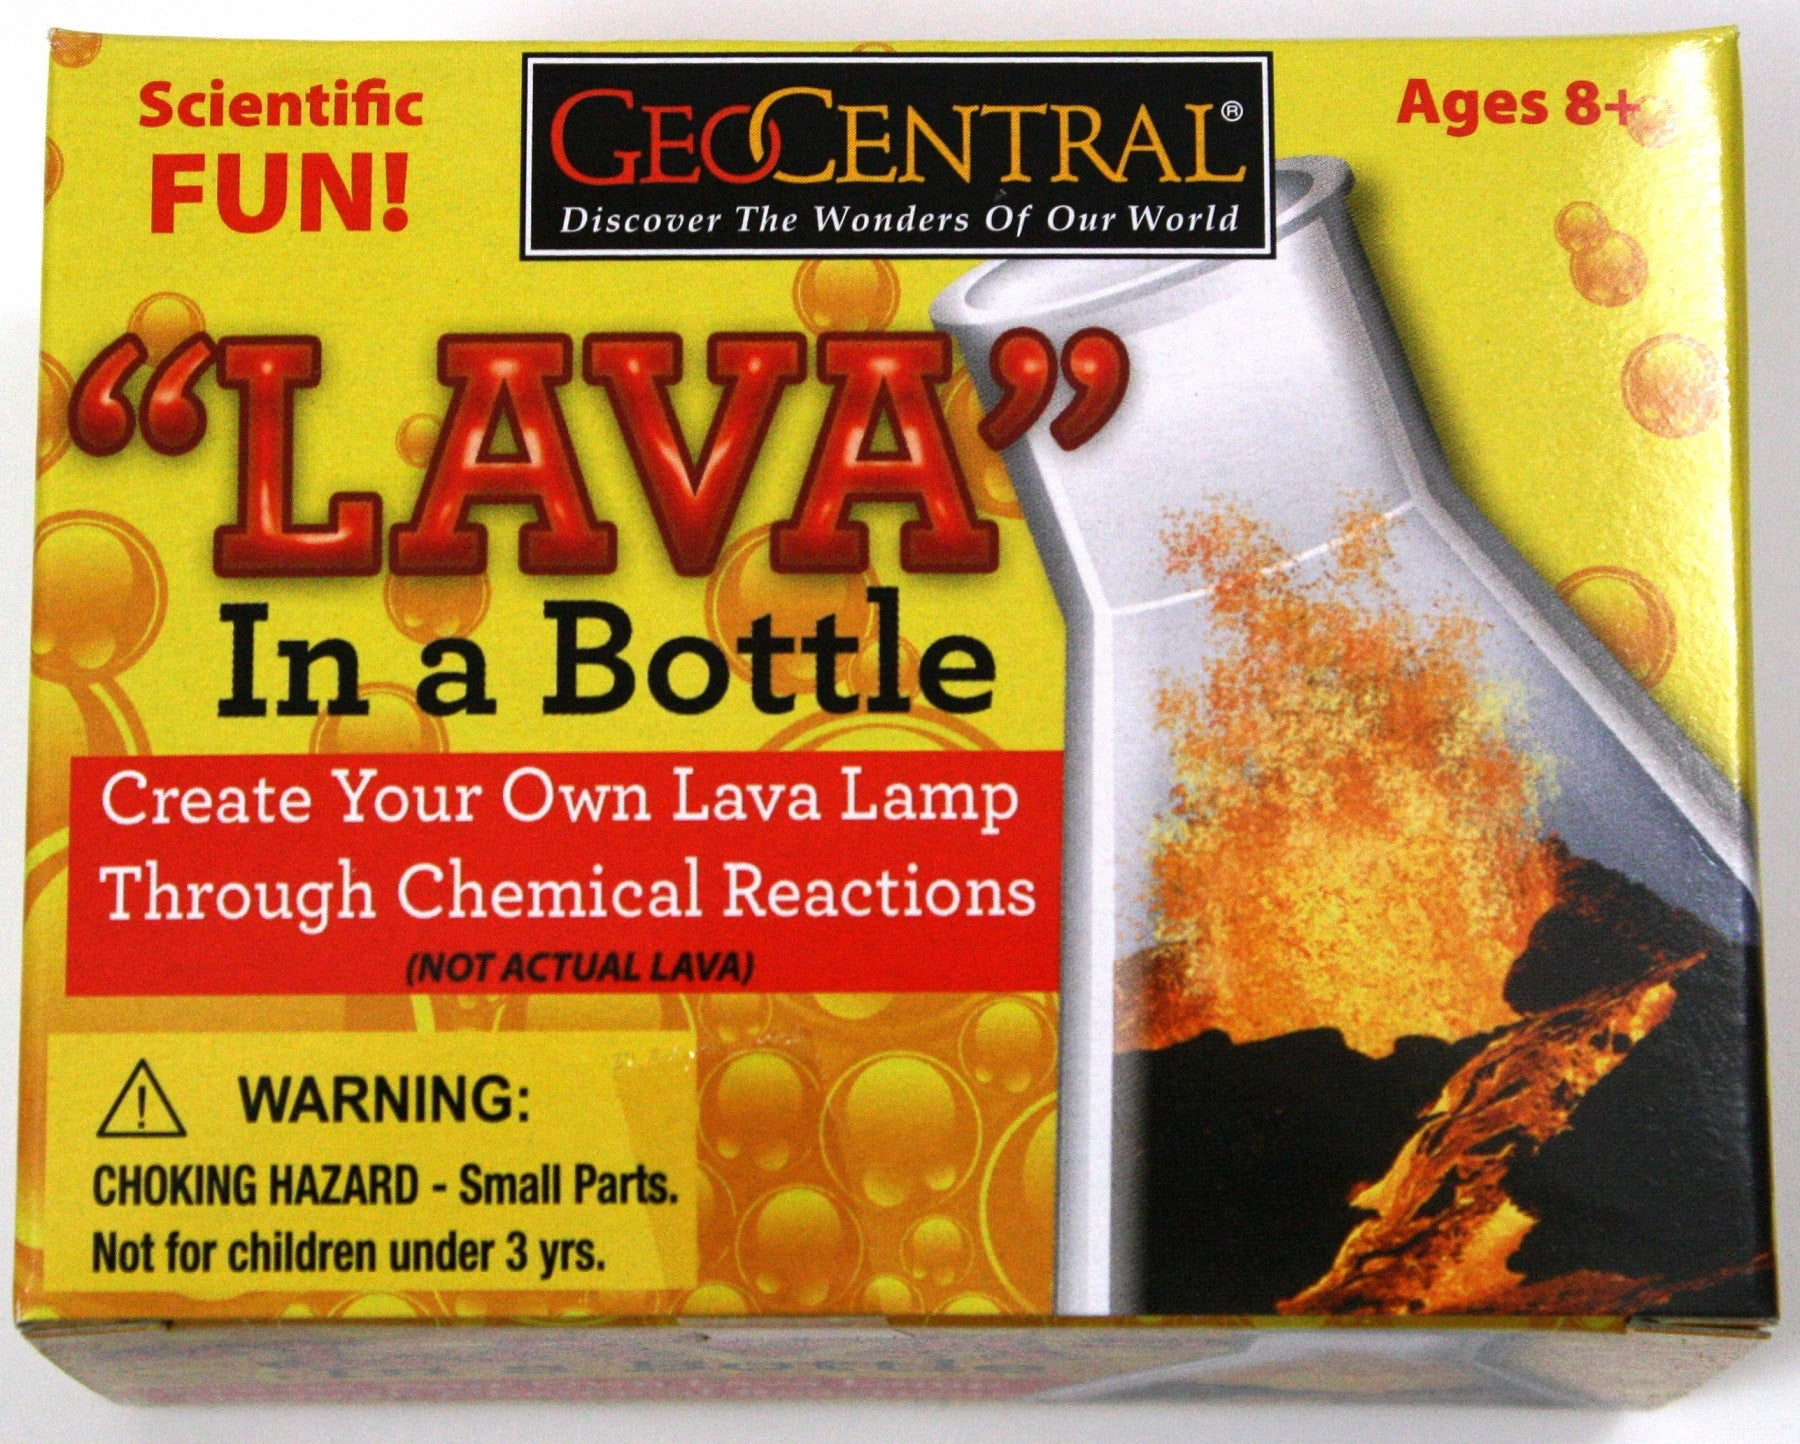 GeoCentral - Lava In A Bottle - Lava Lamp Experiment Kit - Off The Wall Toys and Gifts